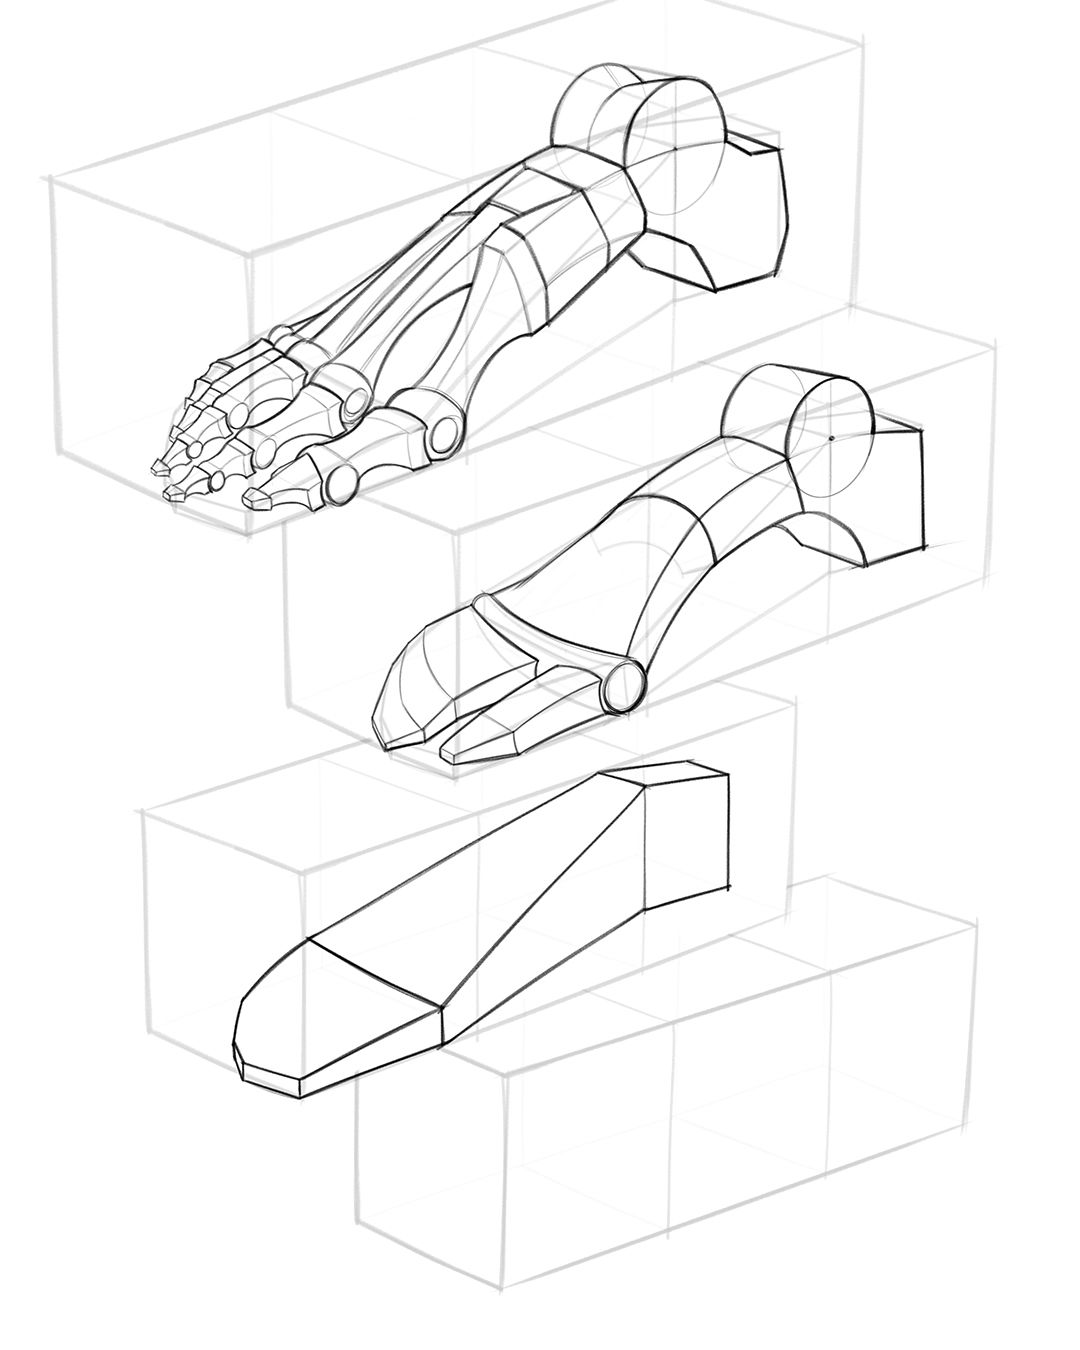 How To Draw Feet With Structure Foot Bone Anatomy